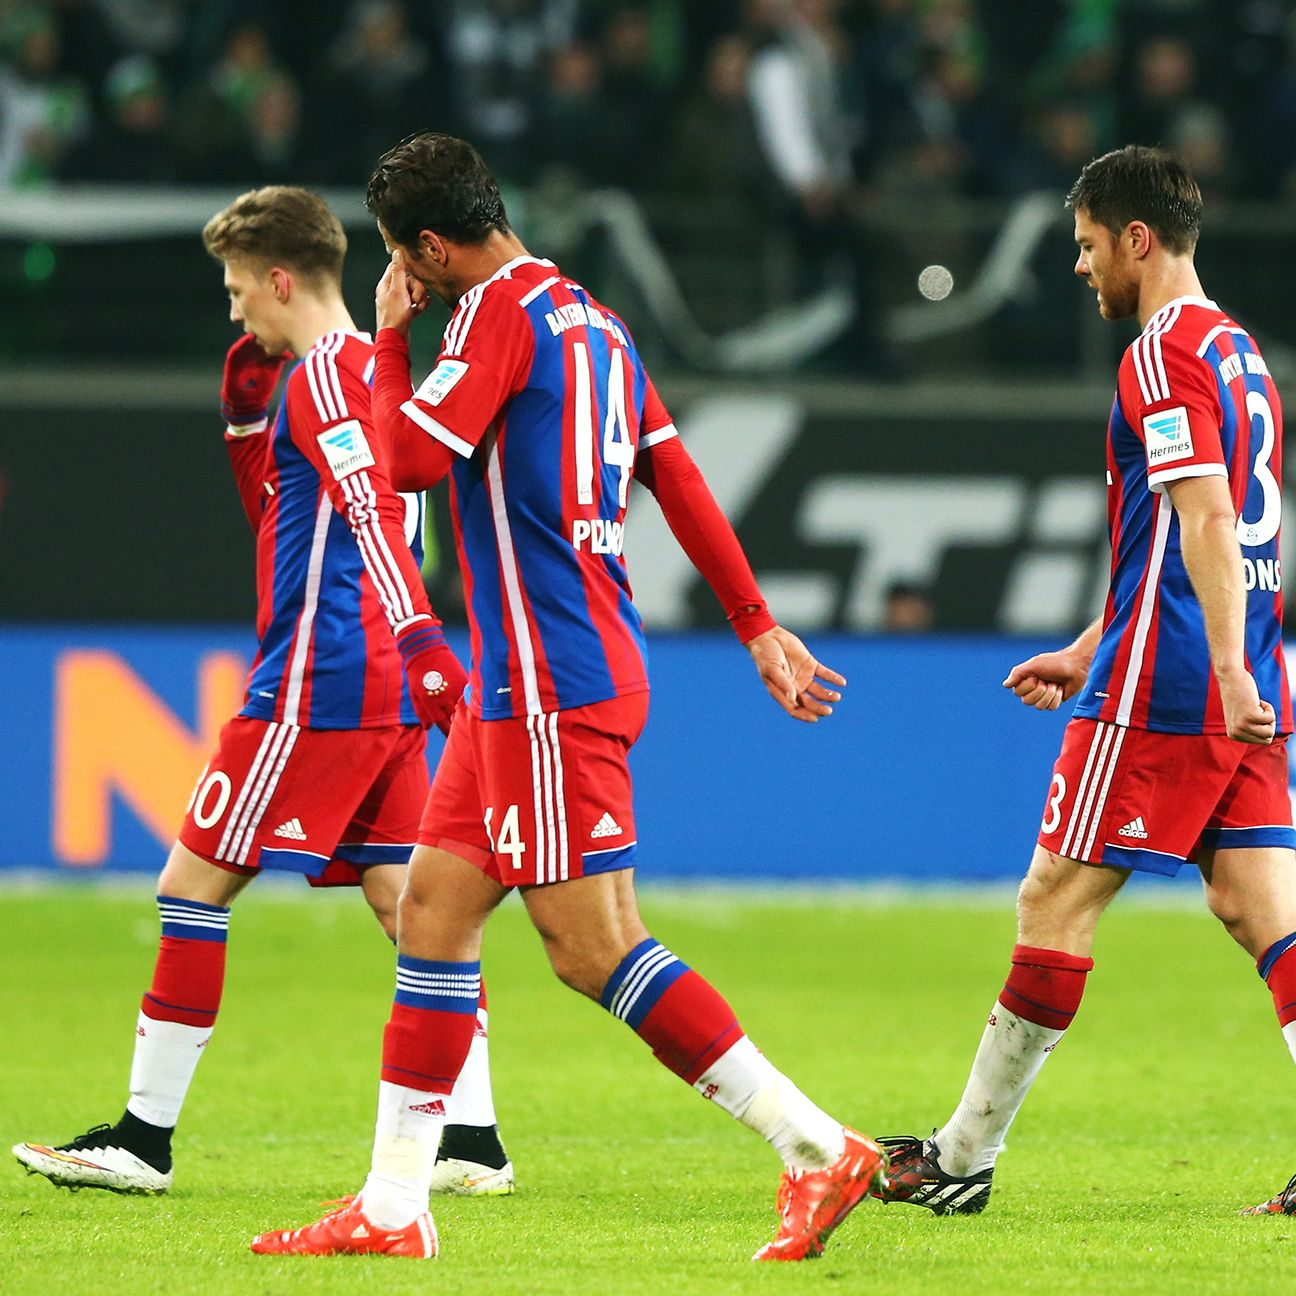 Bayern's unbeaten Bundesliga campaign came to a screeching halt on Friday at Wolfsburg.